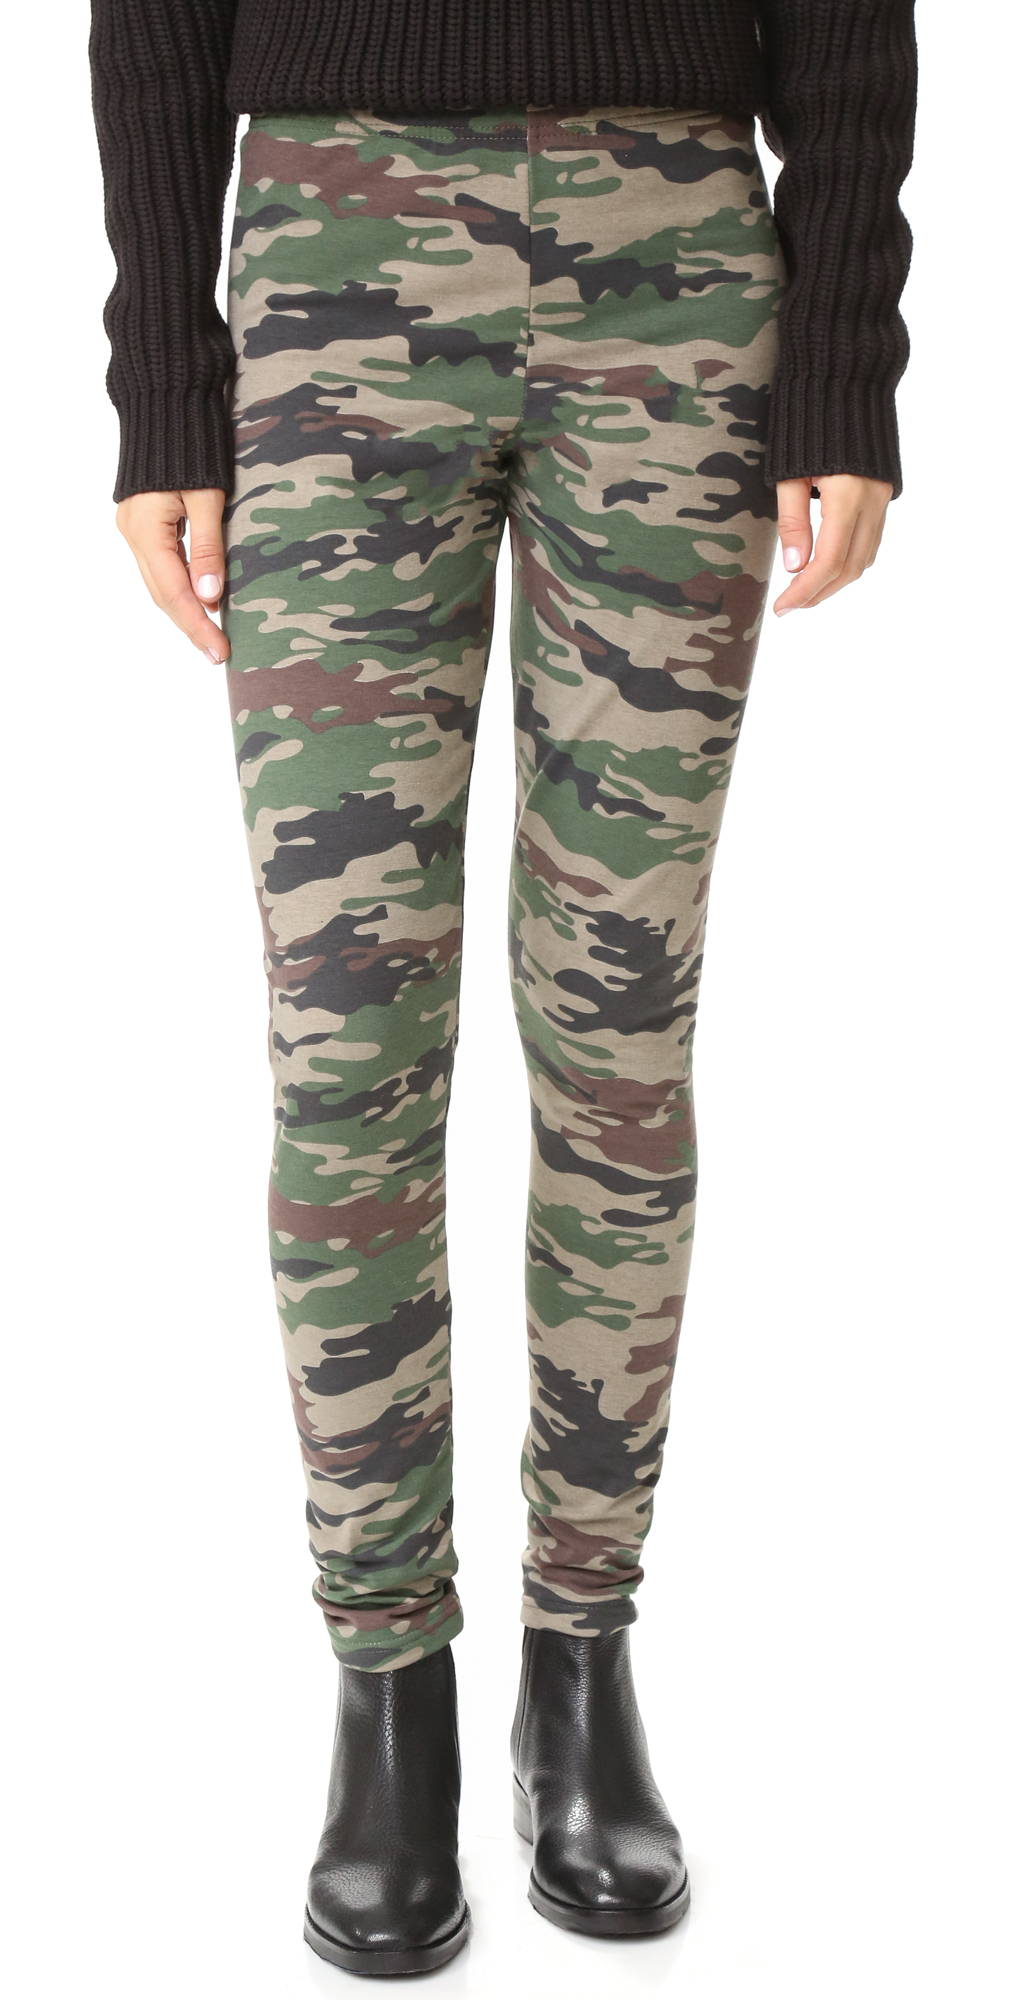 Fleece Lined Camo Print Leggings Plush